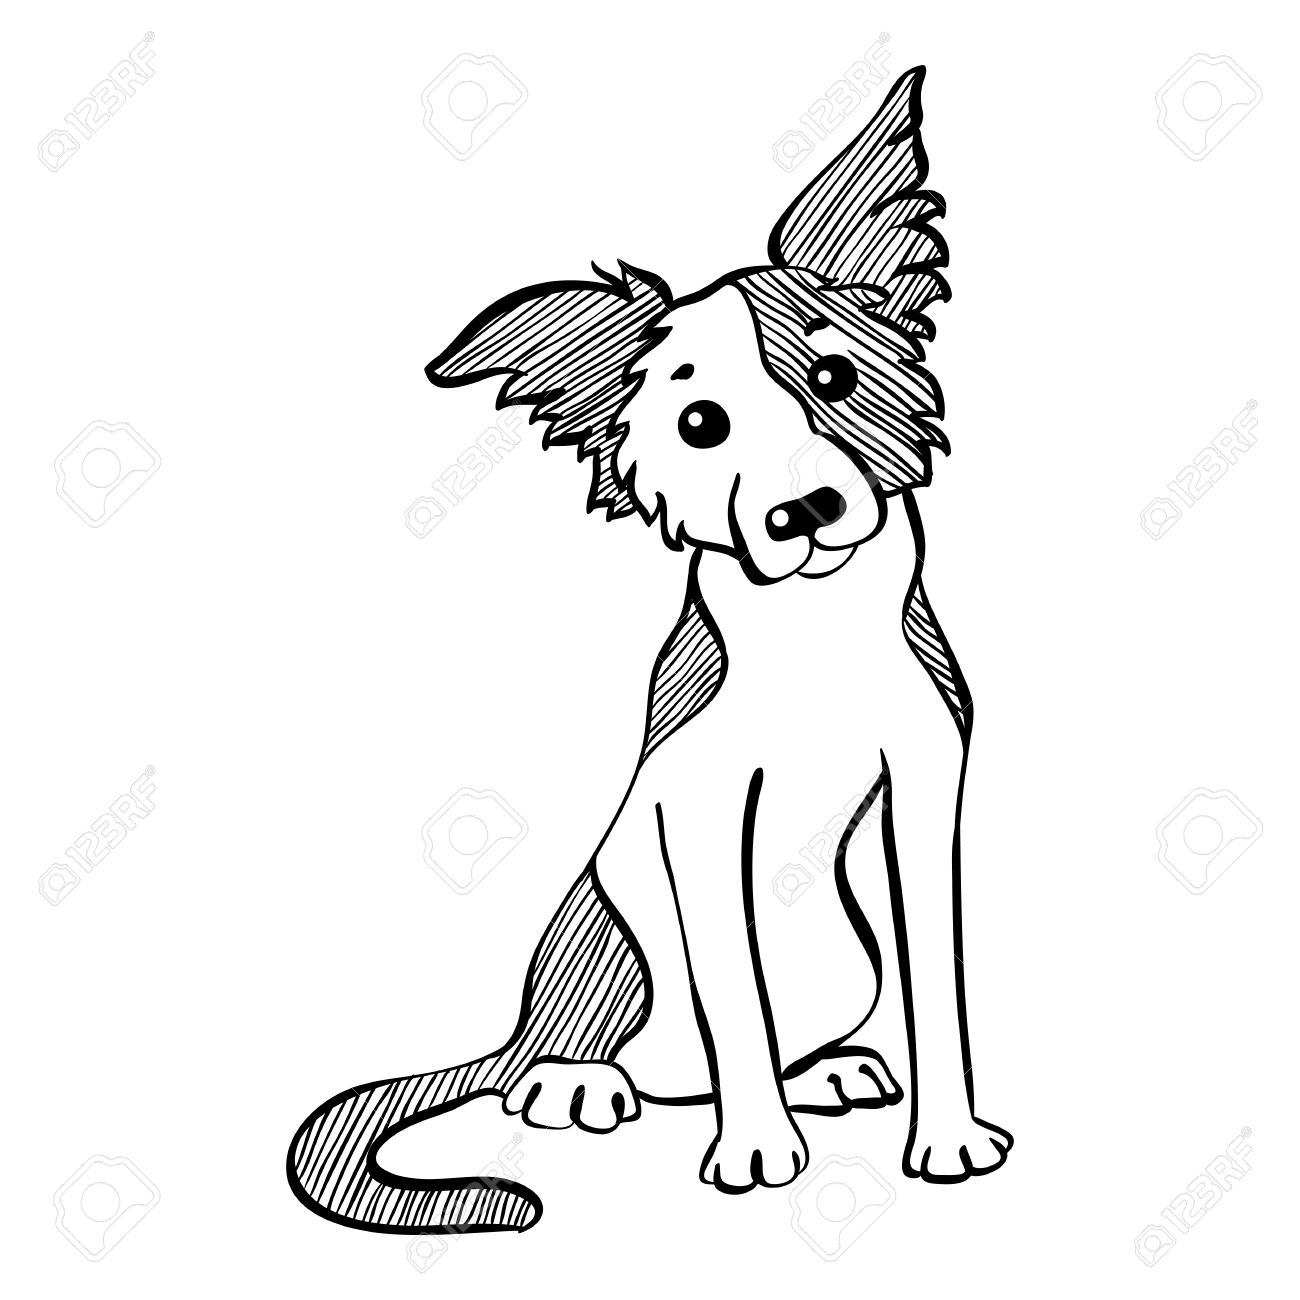 1300x1300 Sketch Funny Dog Border Collie Breed Sitting Hand Drawing Vector